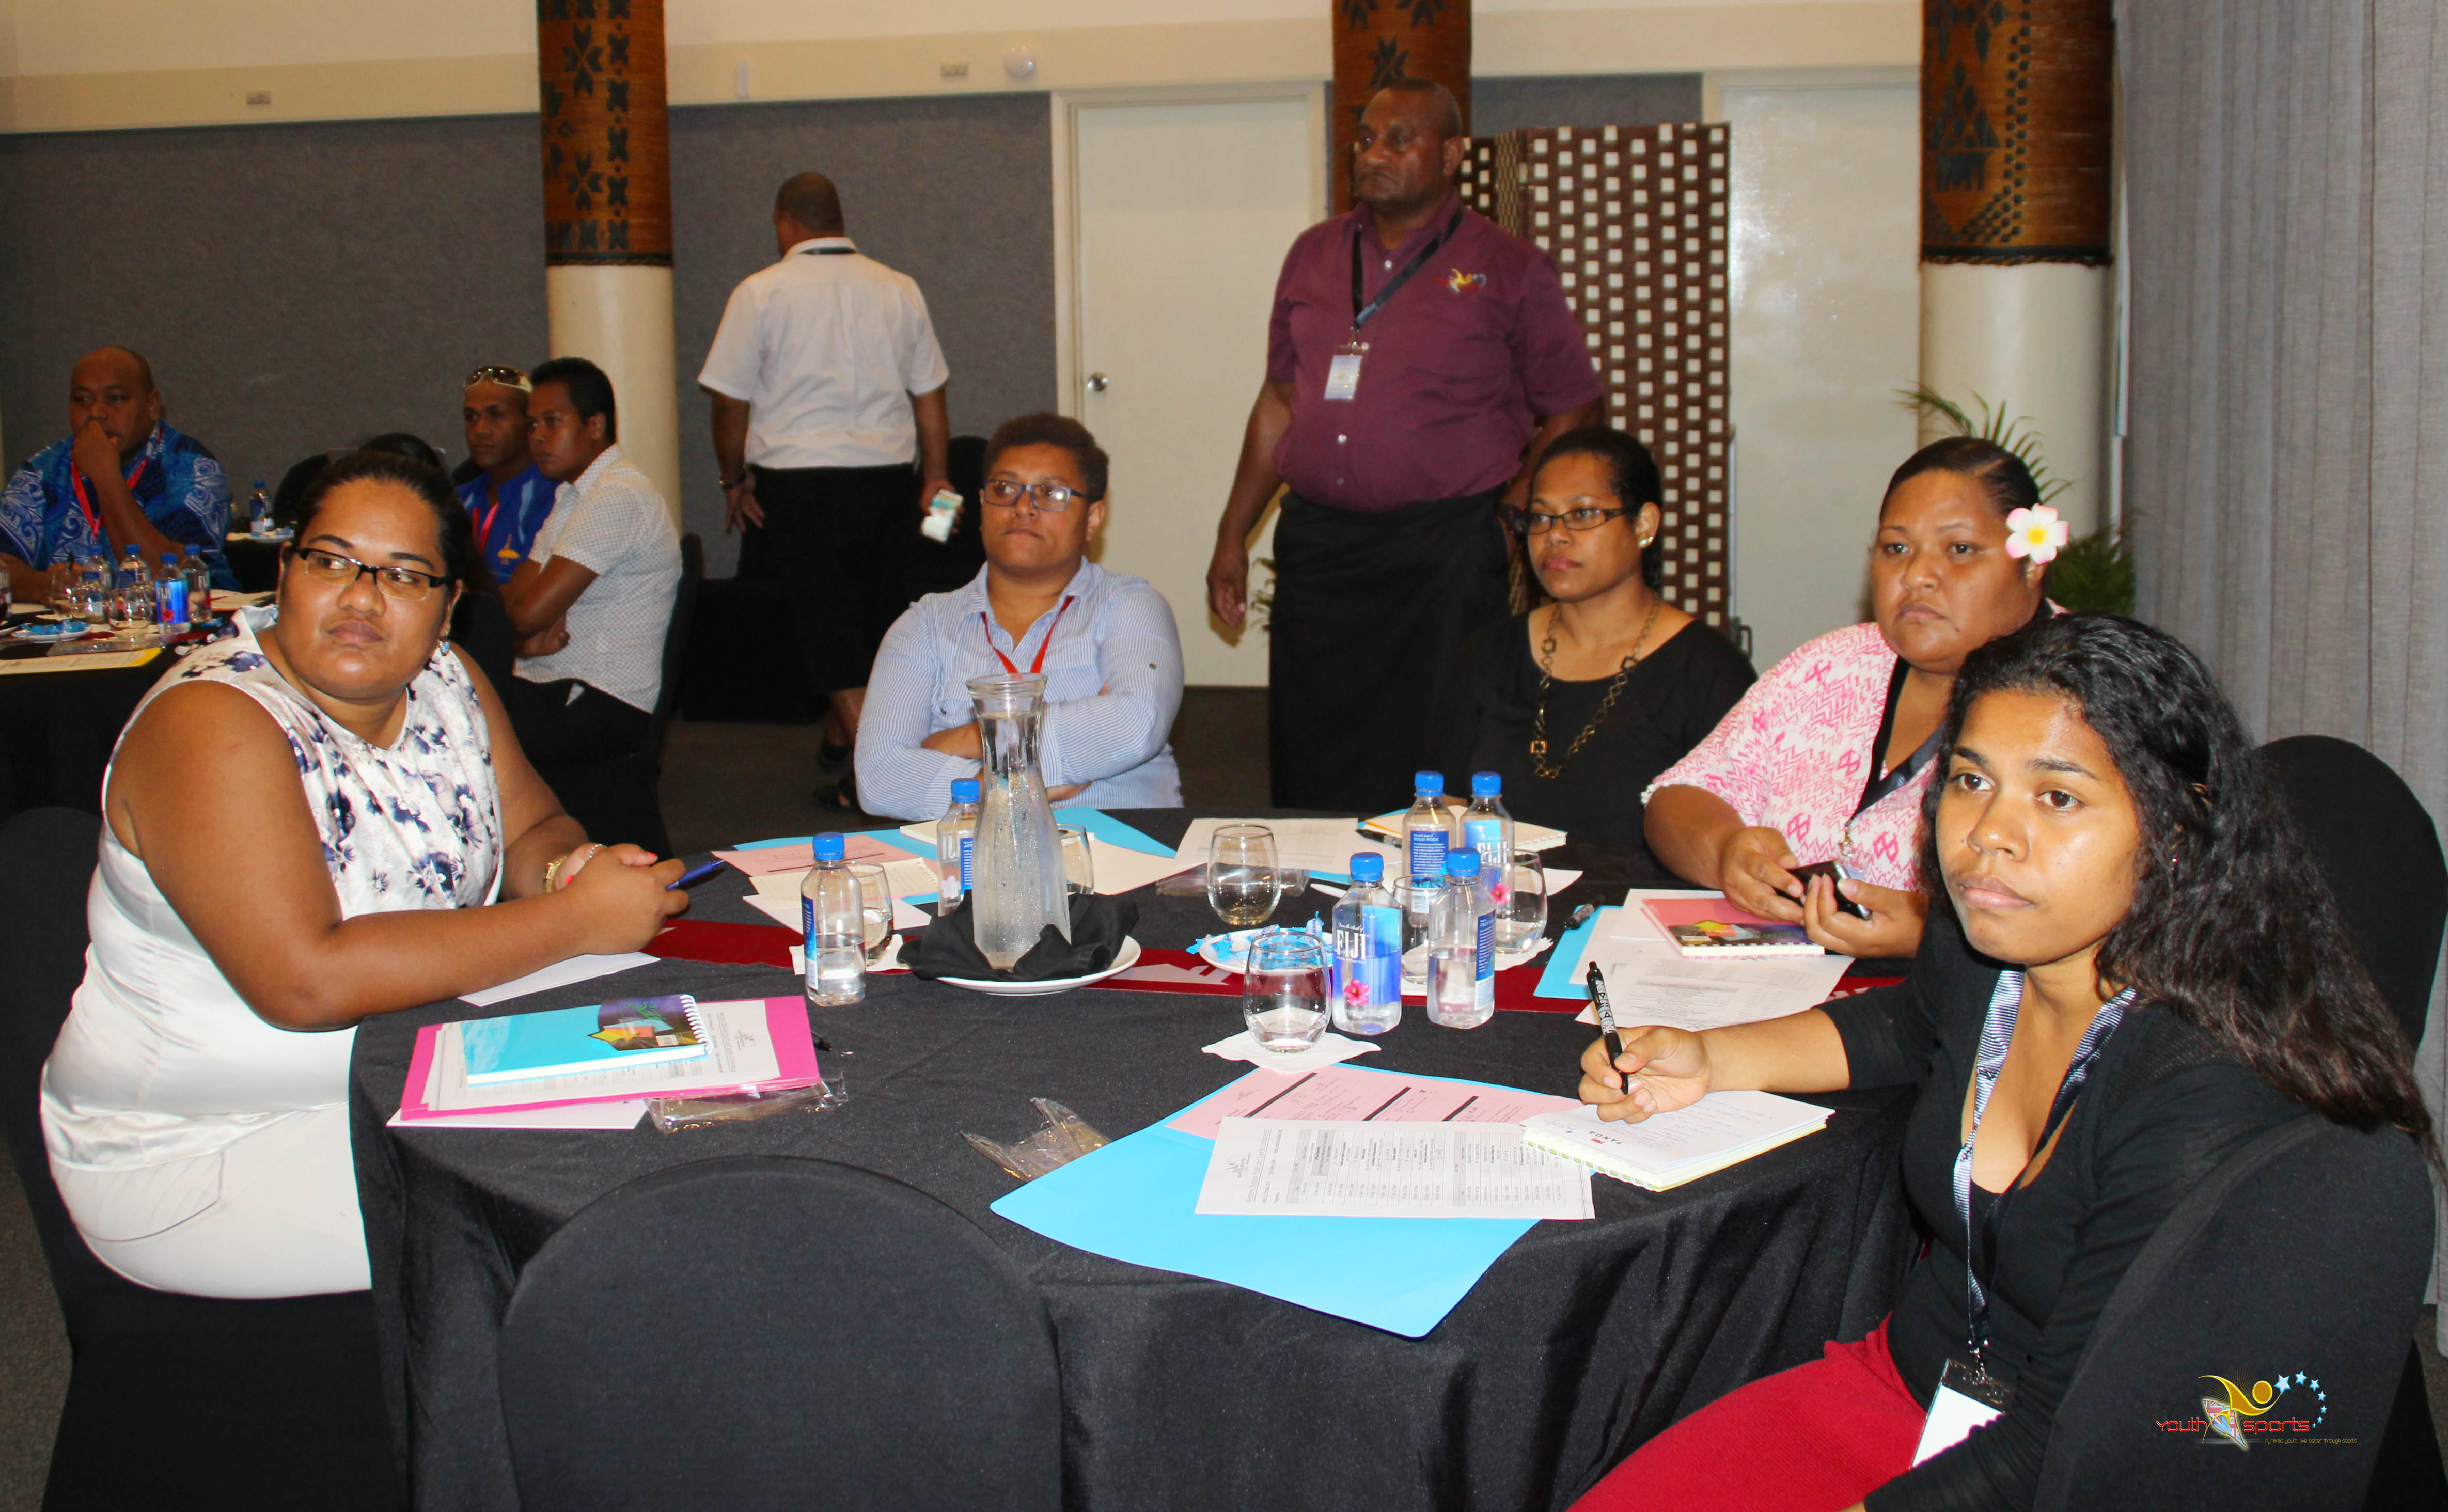 DIALOGUE AND OPEN MIND TO FEATURE IN YOUTH CONFERENCE – Fiji